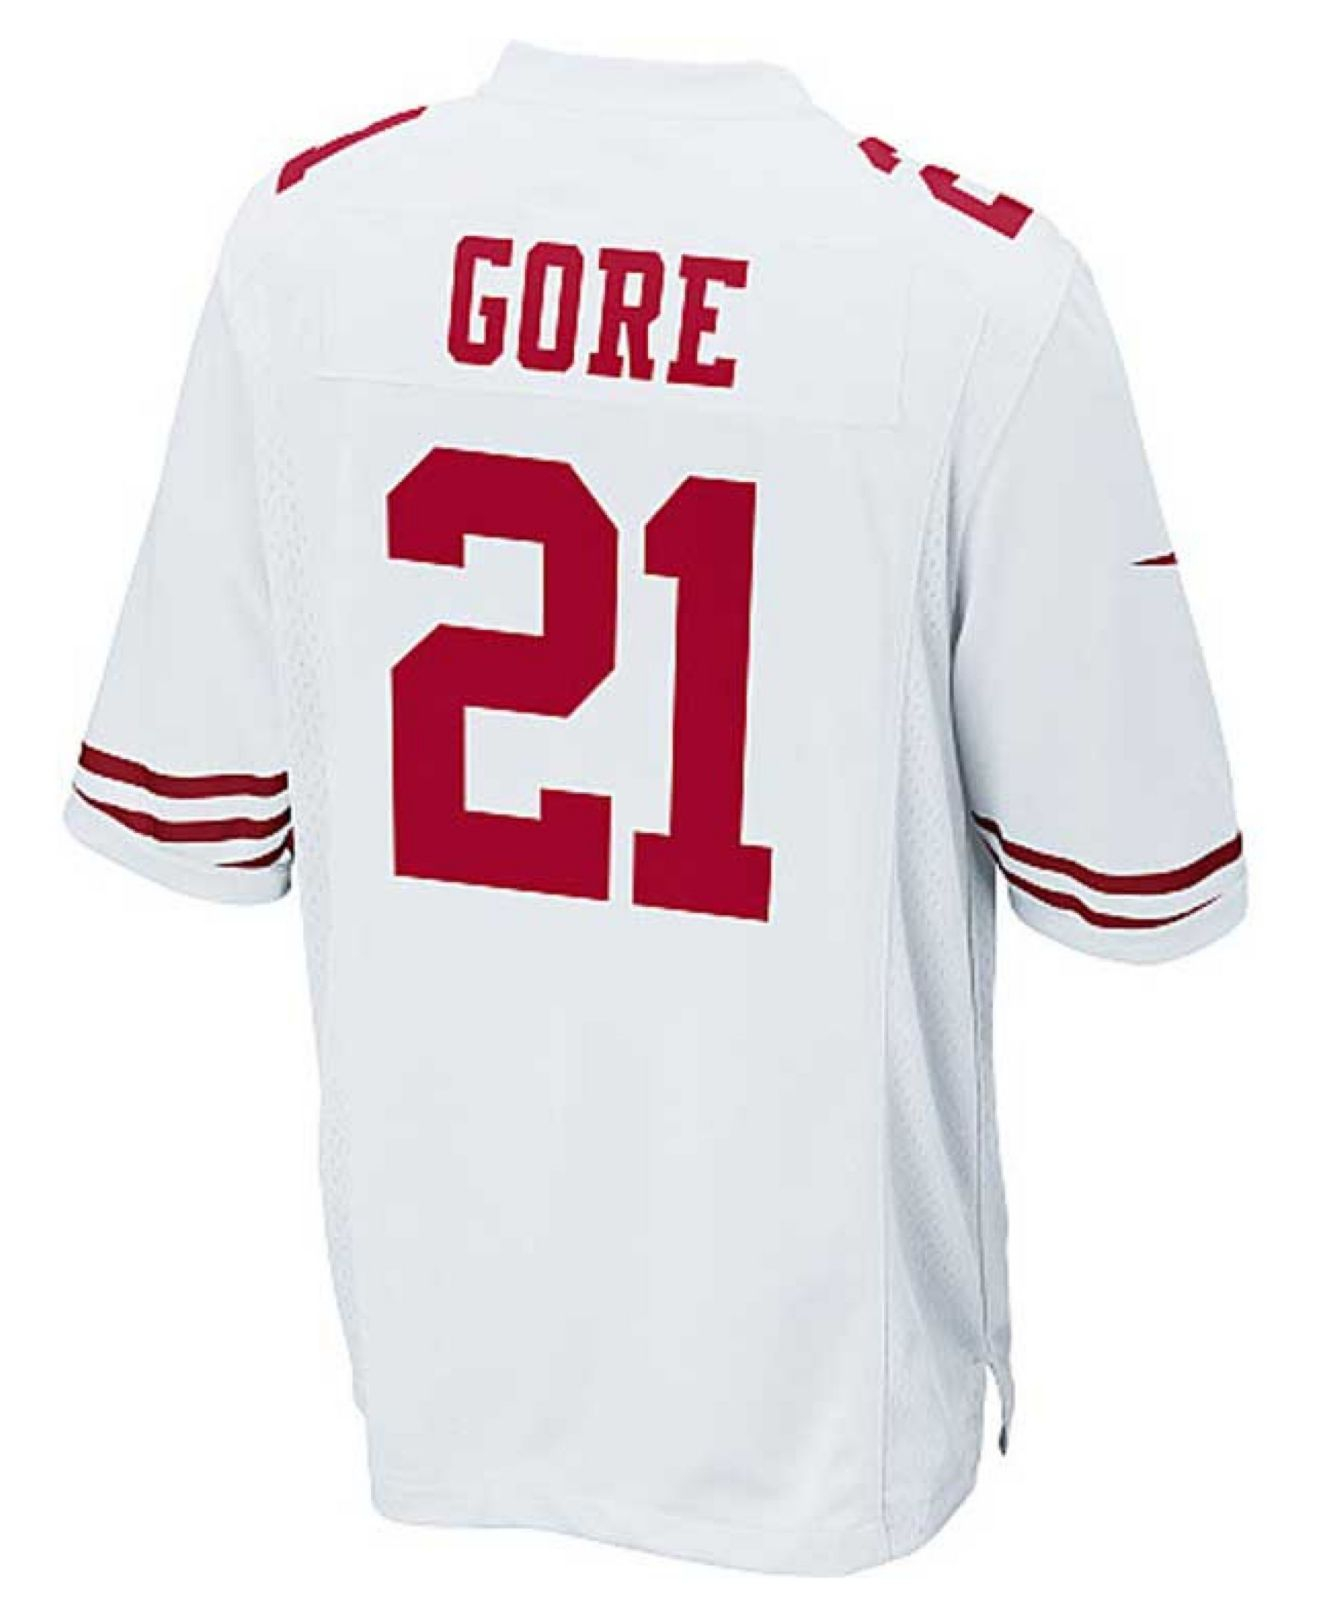 66fa5d5f823 Lyst - Nike Men's Frank Gore San Francisco 49ers Game Jersey in ...